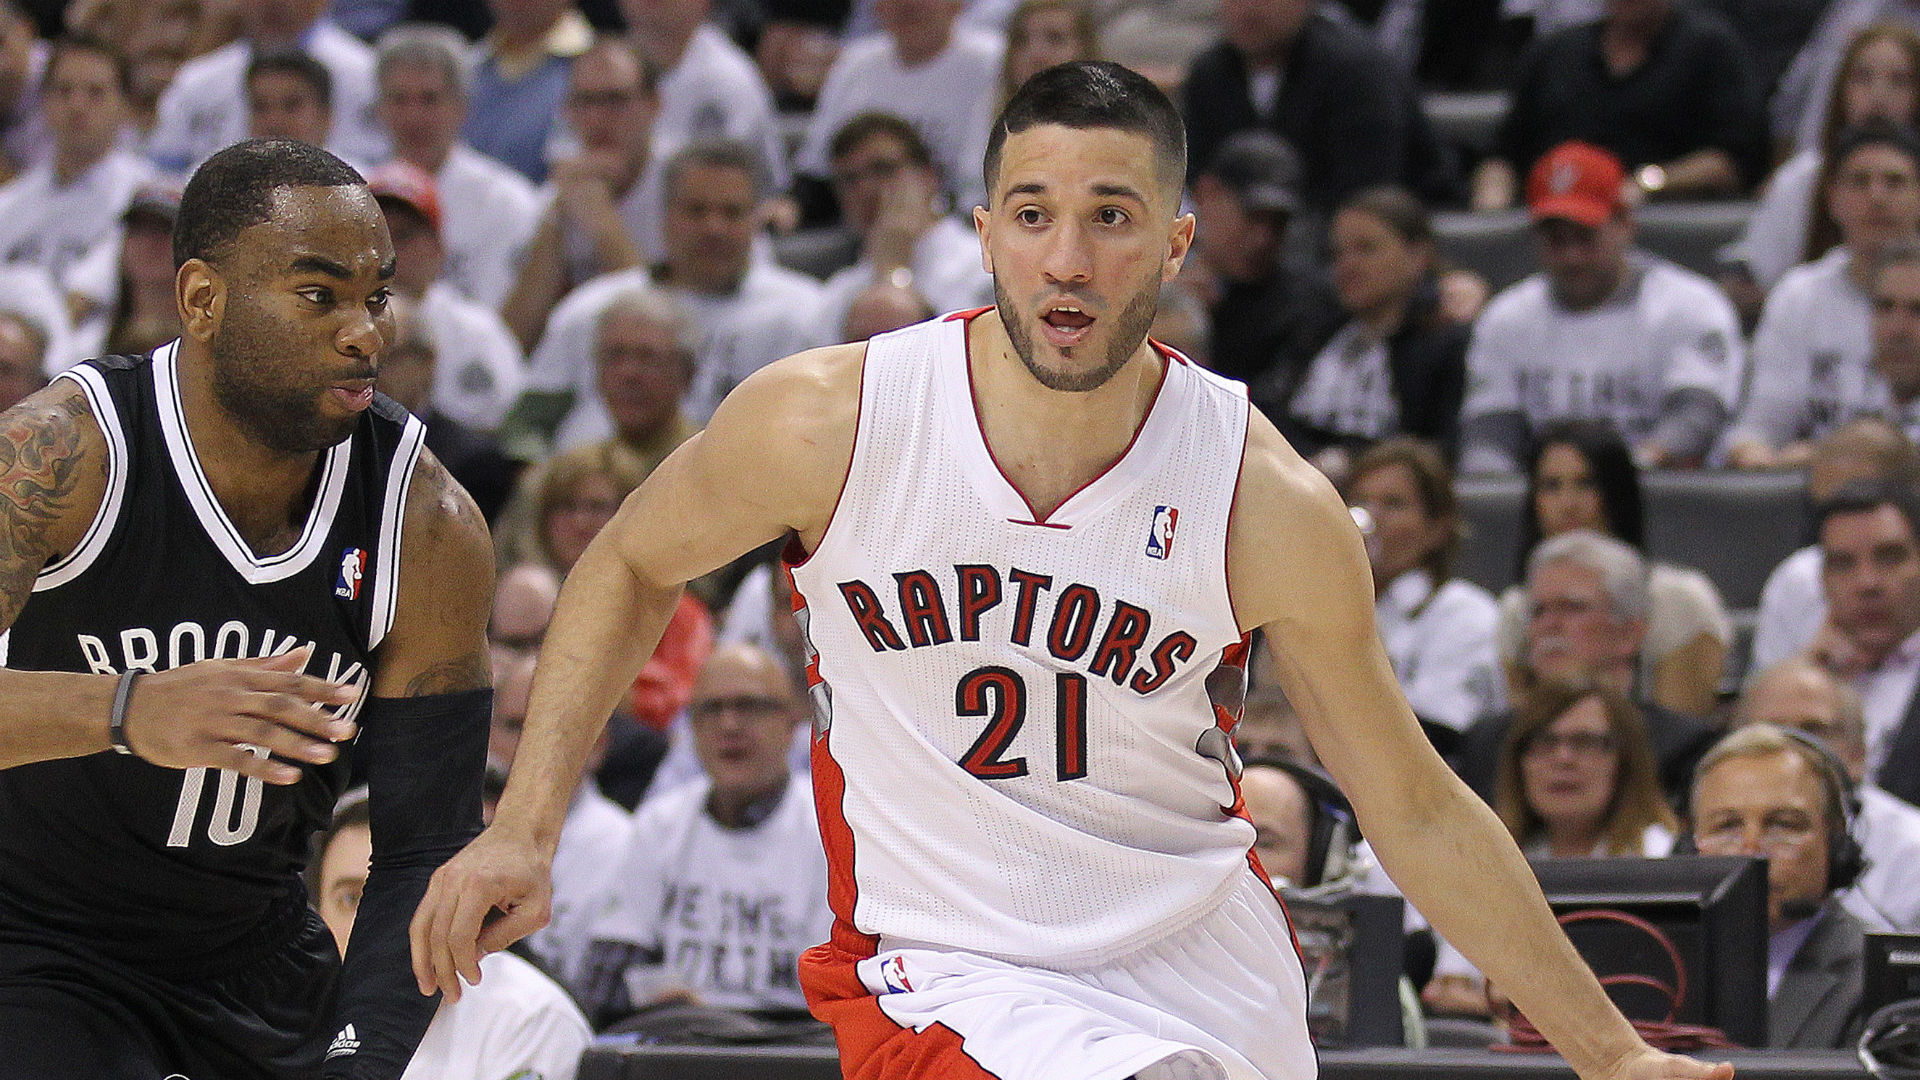 greivis-vasquez-062515-getty-ftr-us.jpg